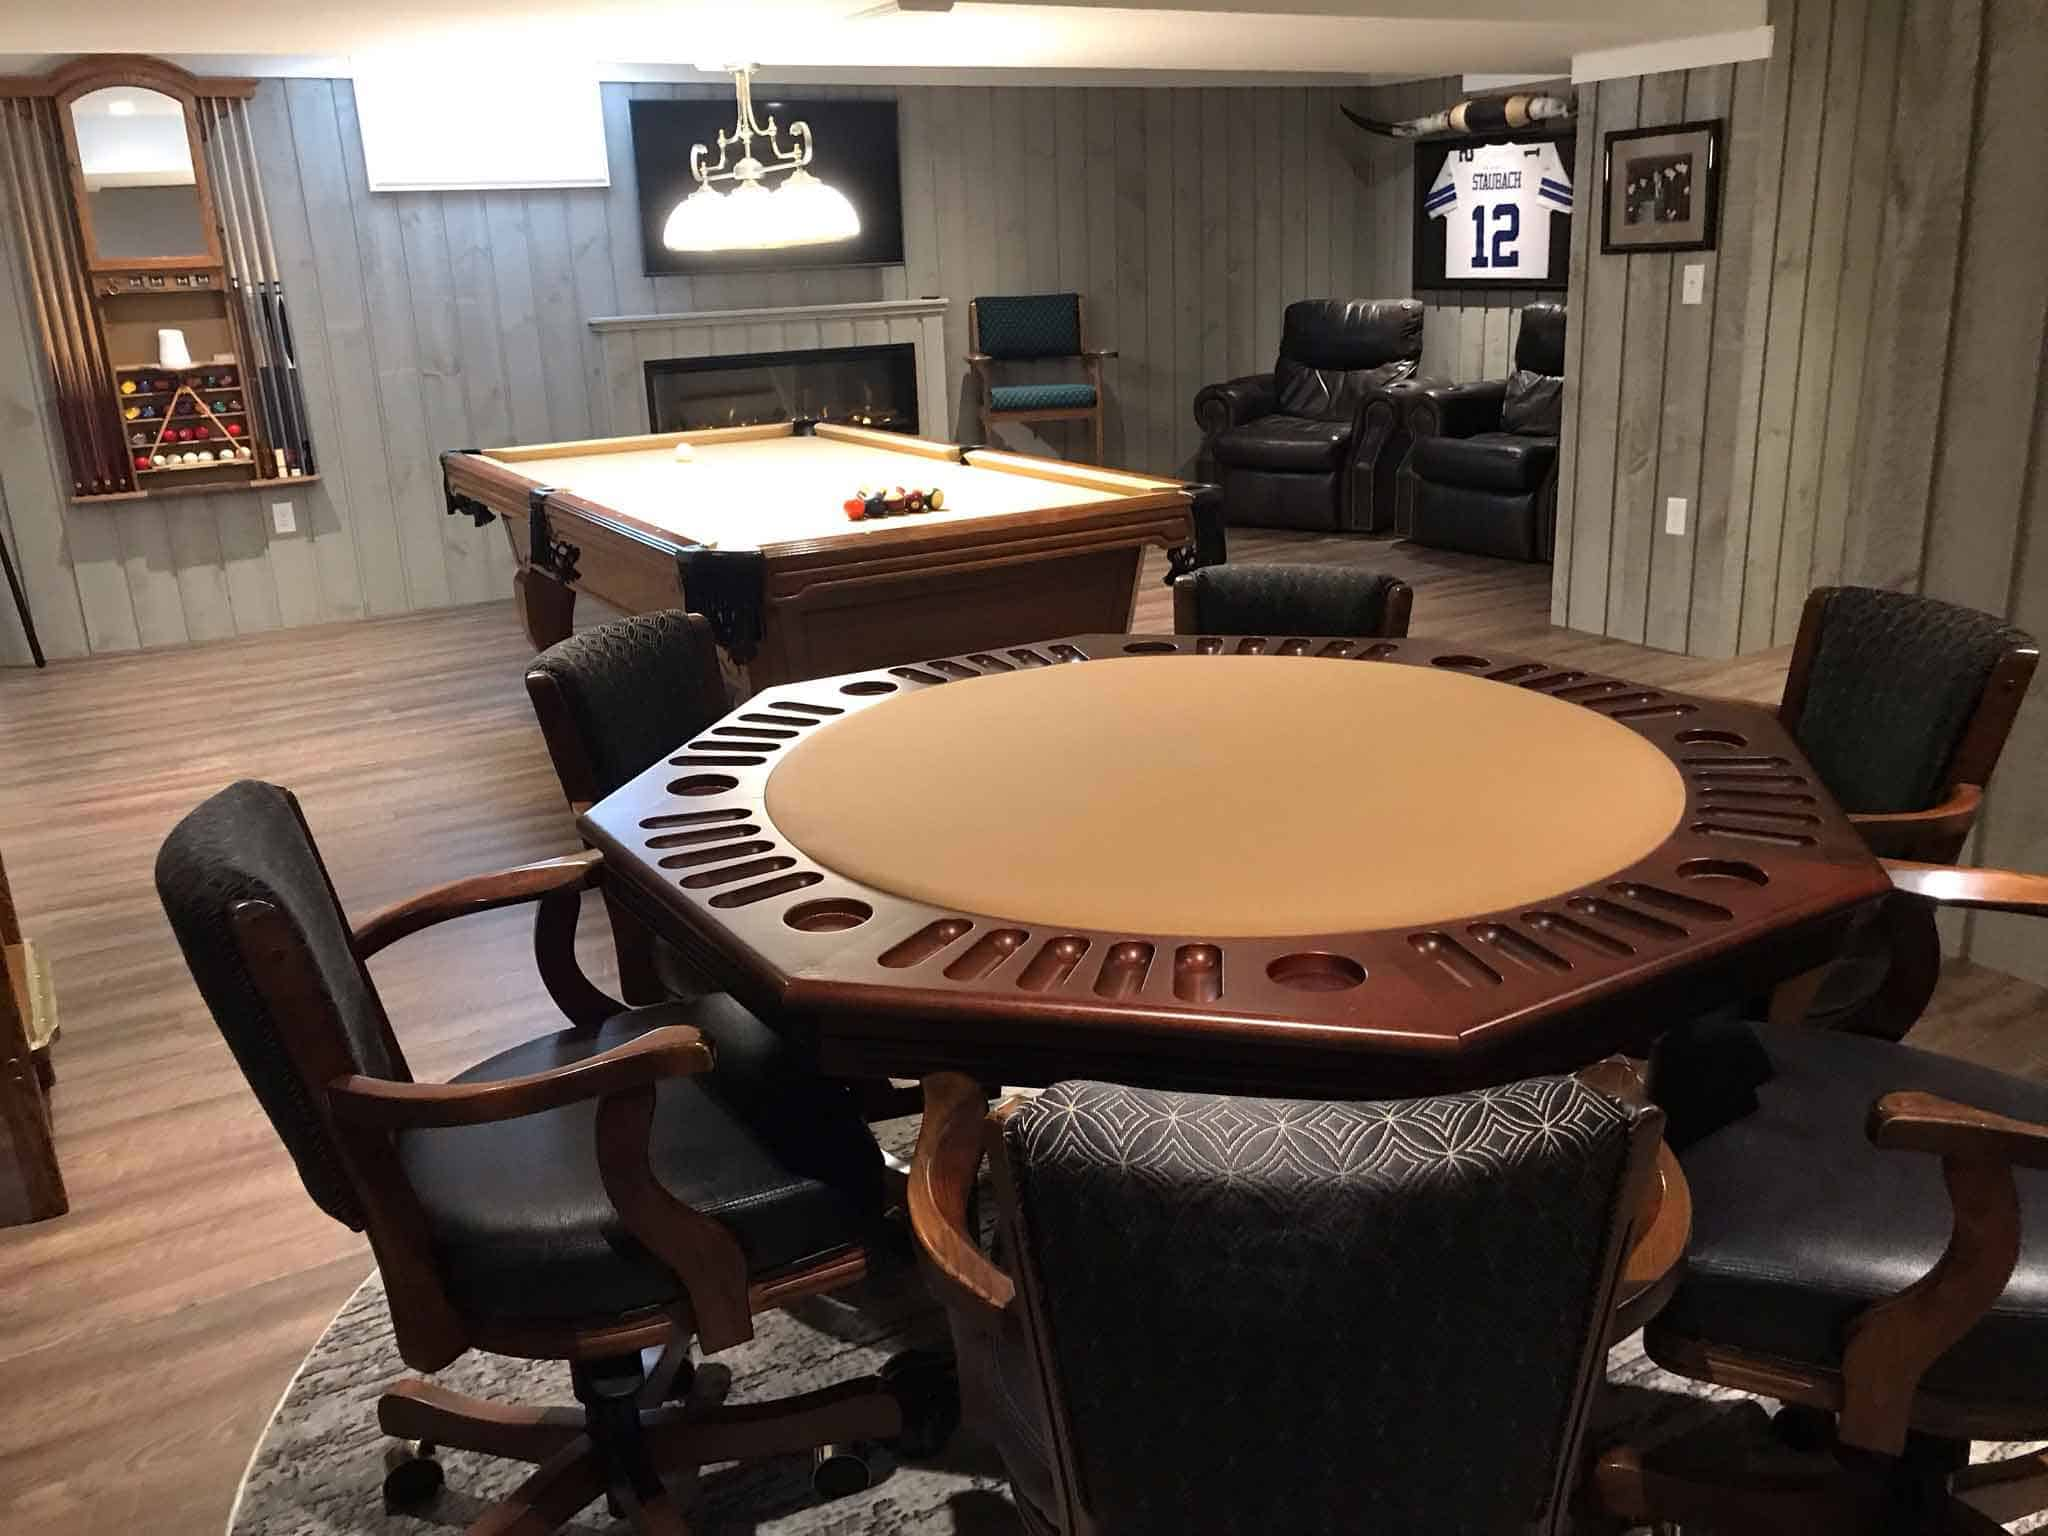 westerly rhode island pool table and game table